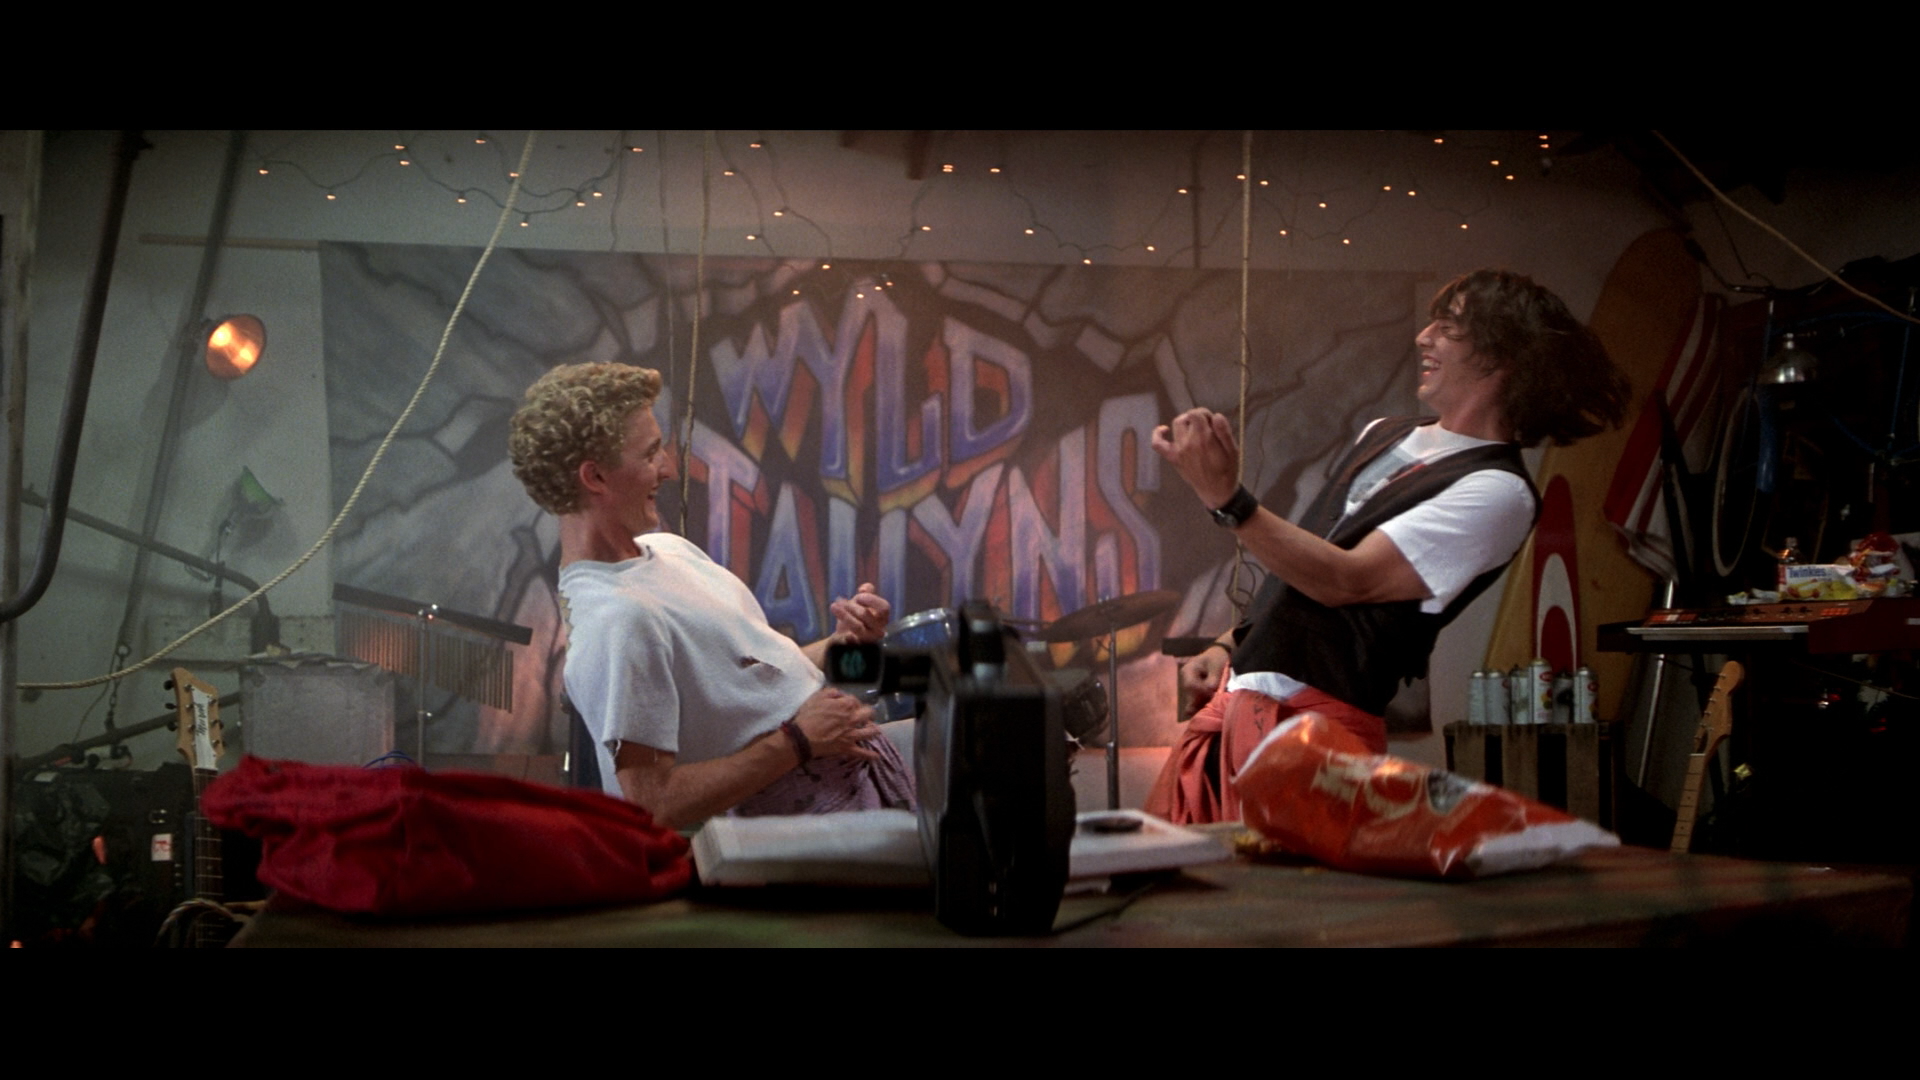 Bill & Ted on an Excellent Adventure